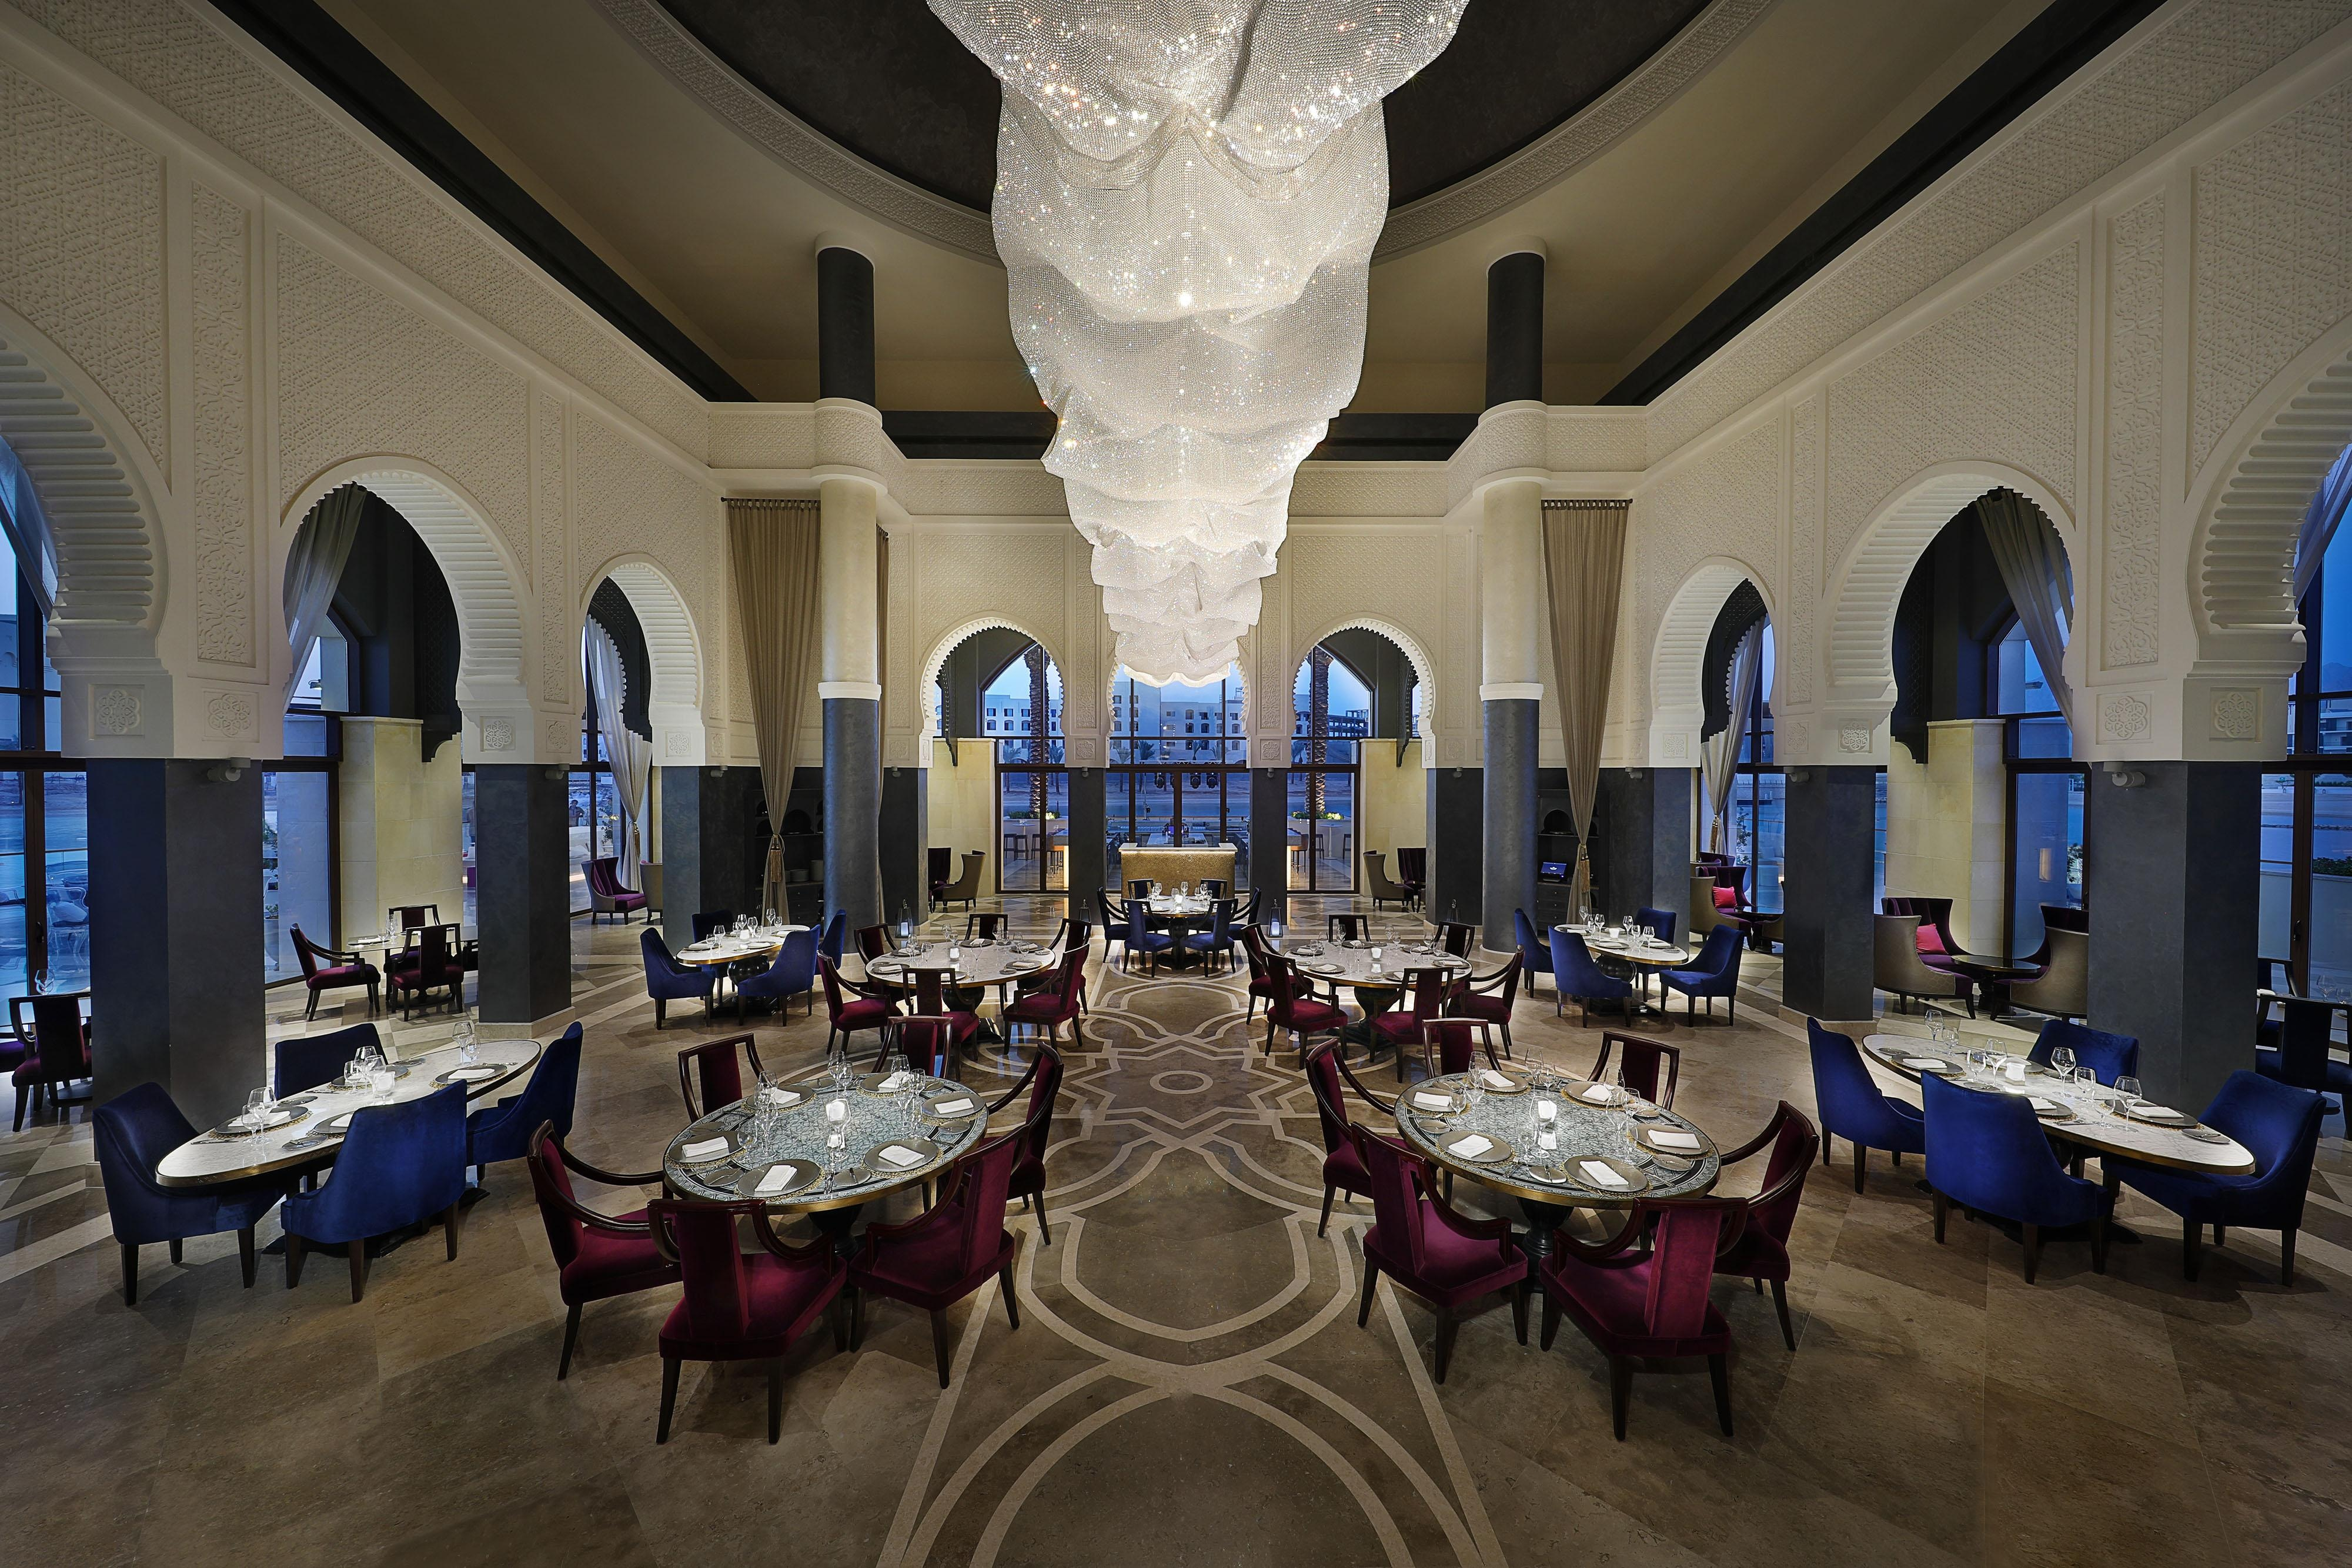 Open for dinner, Kubba Levantin blends classical preparations and exciting new flavors, taking a modern approach on Levantine cuisine.